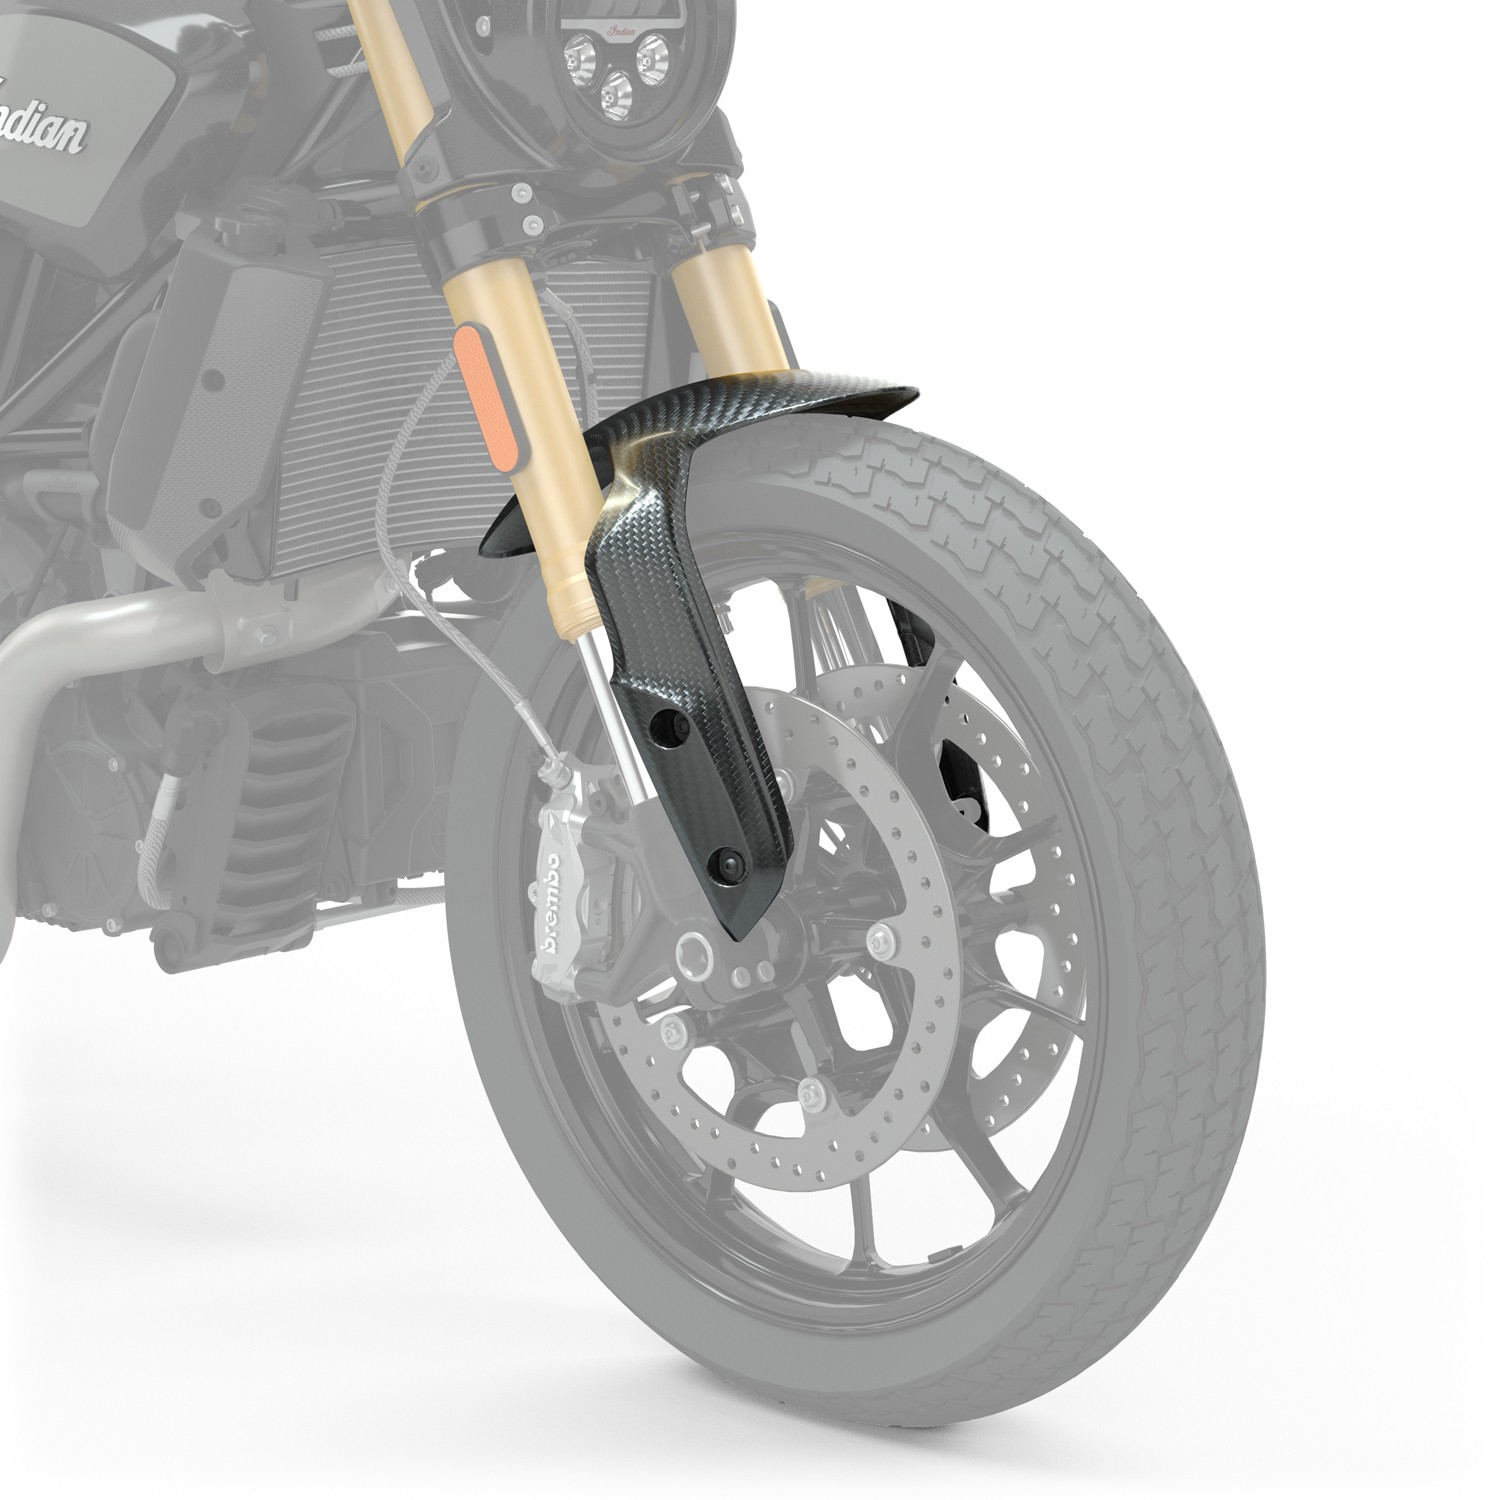 Indian Motorcycle Aparatoare Frontala Din Fibra De Carbon